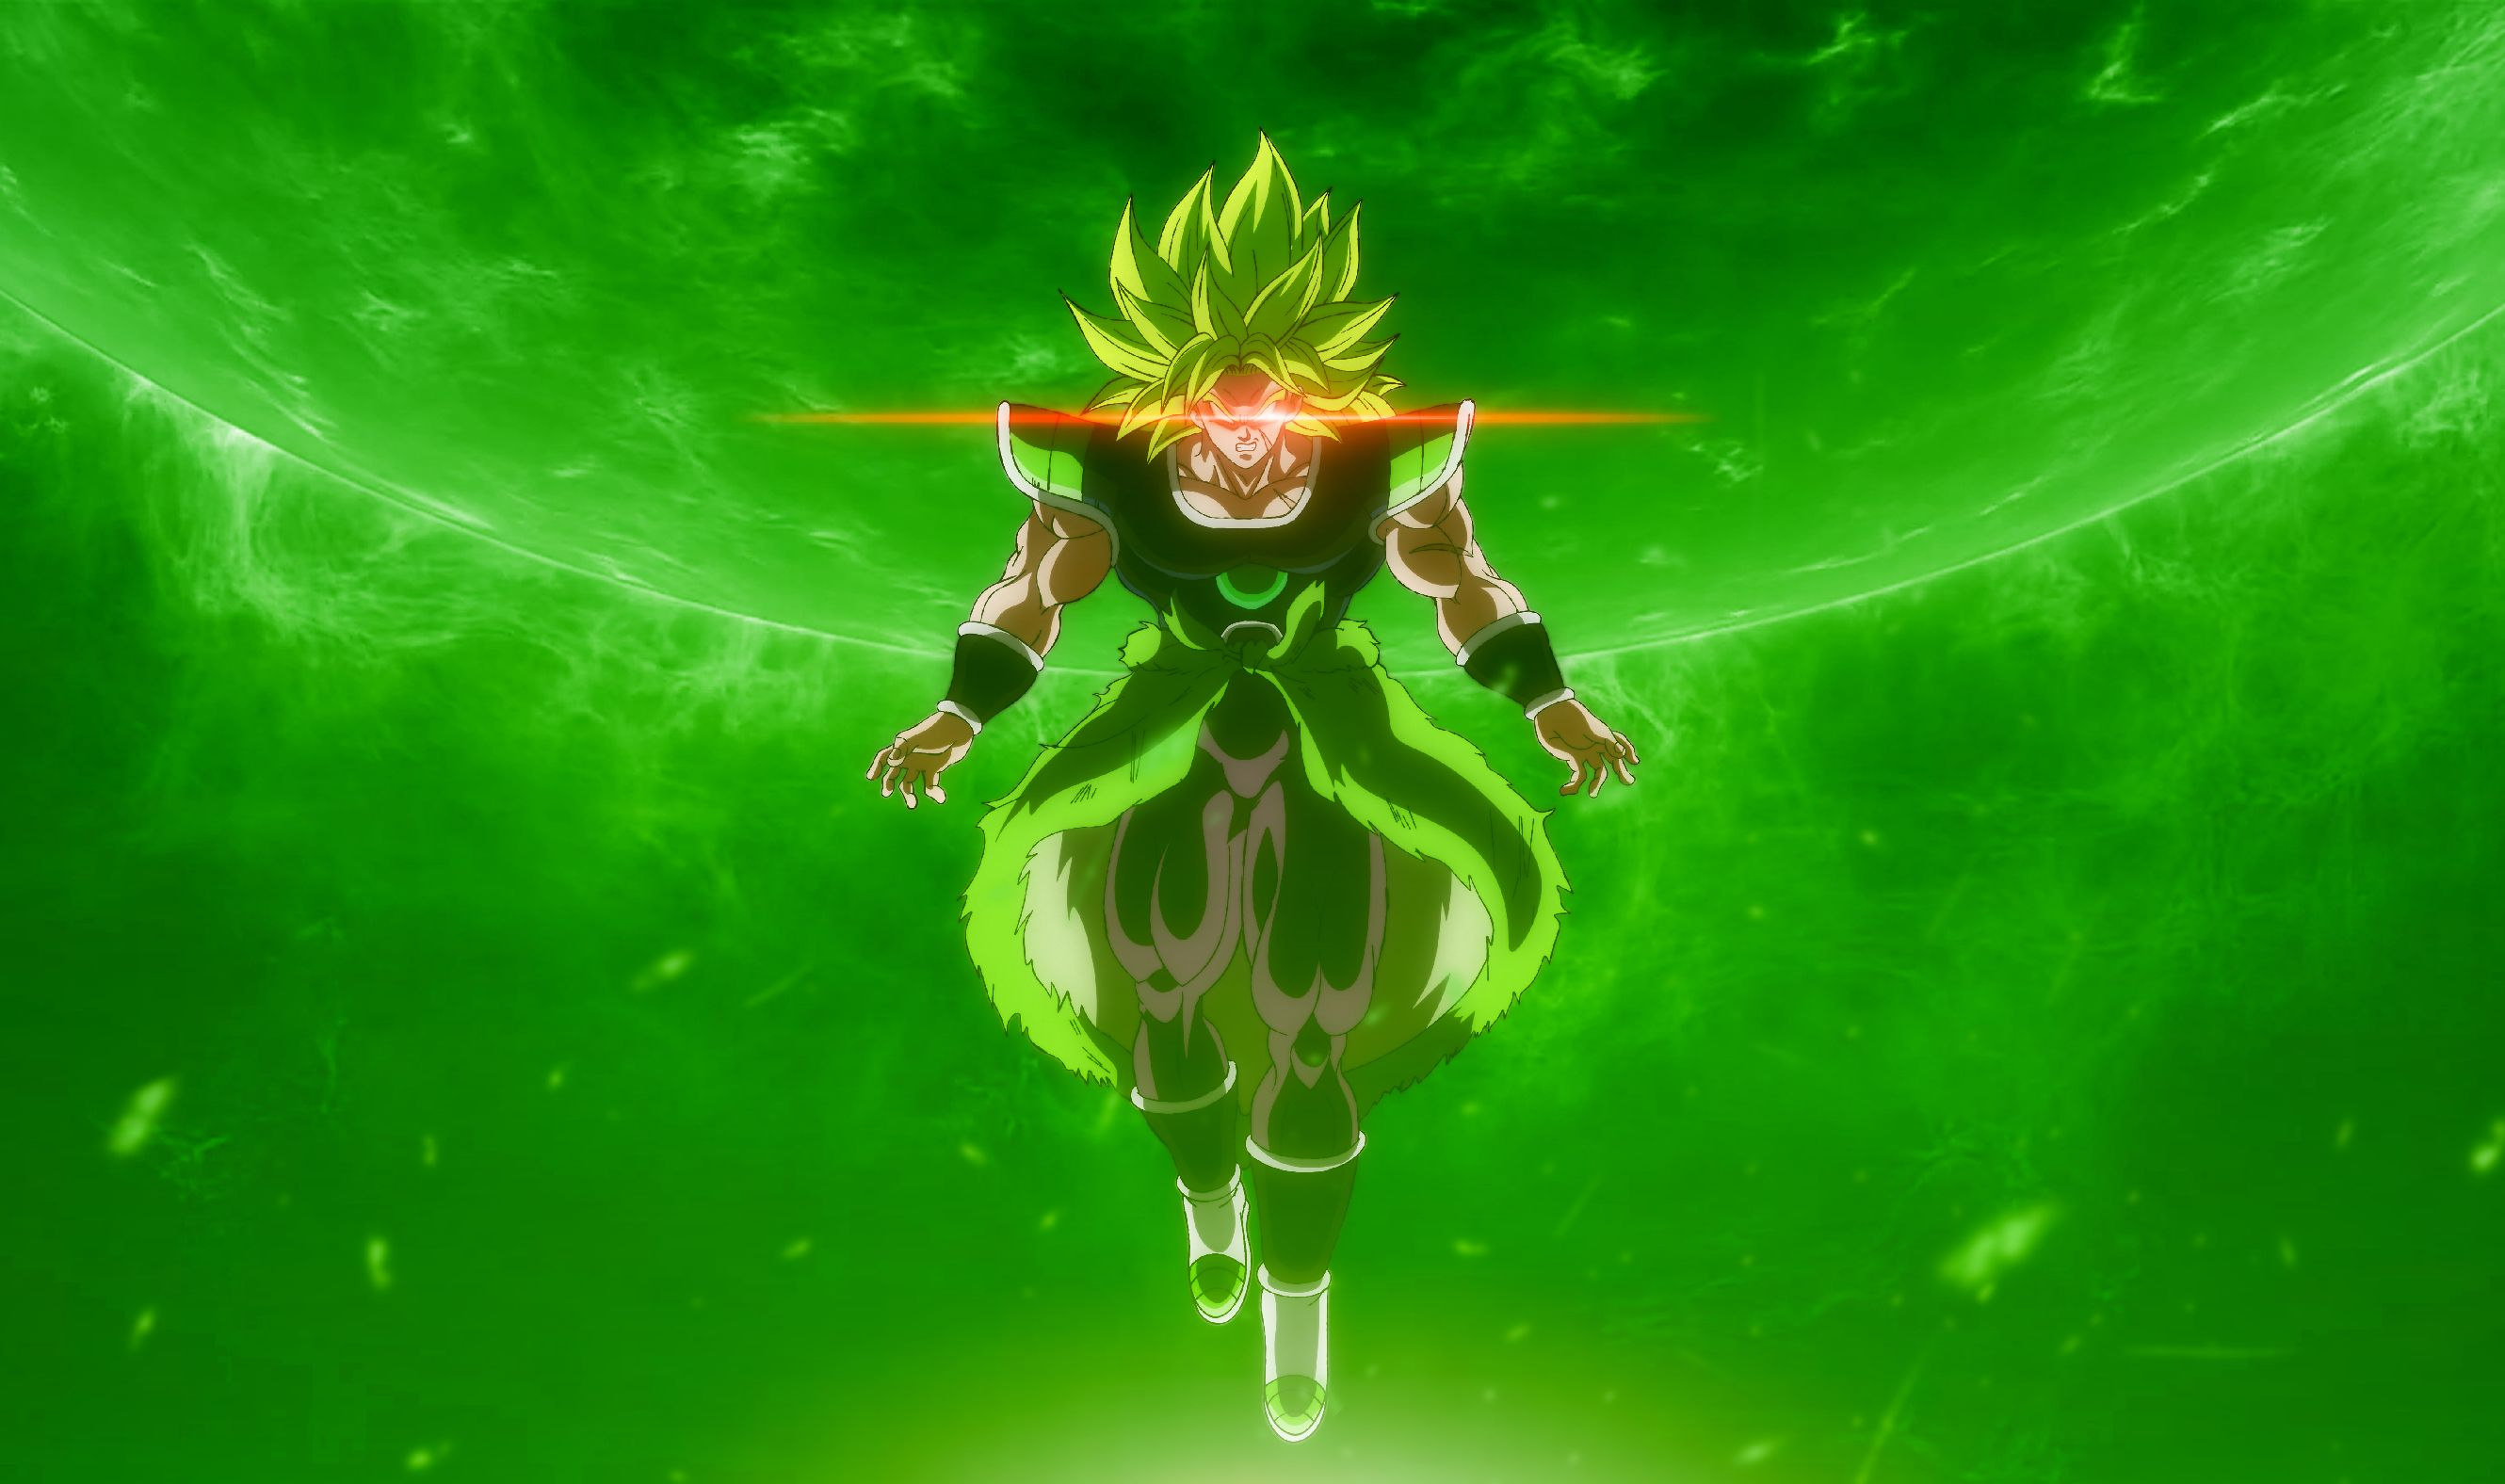 Broly Ssj Dragon Ball Super Wallpapers Broly Movie Dragon Ball Wallpapers